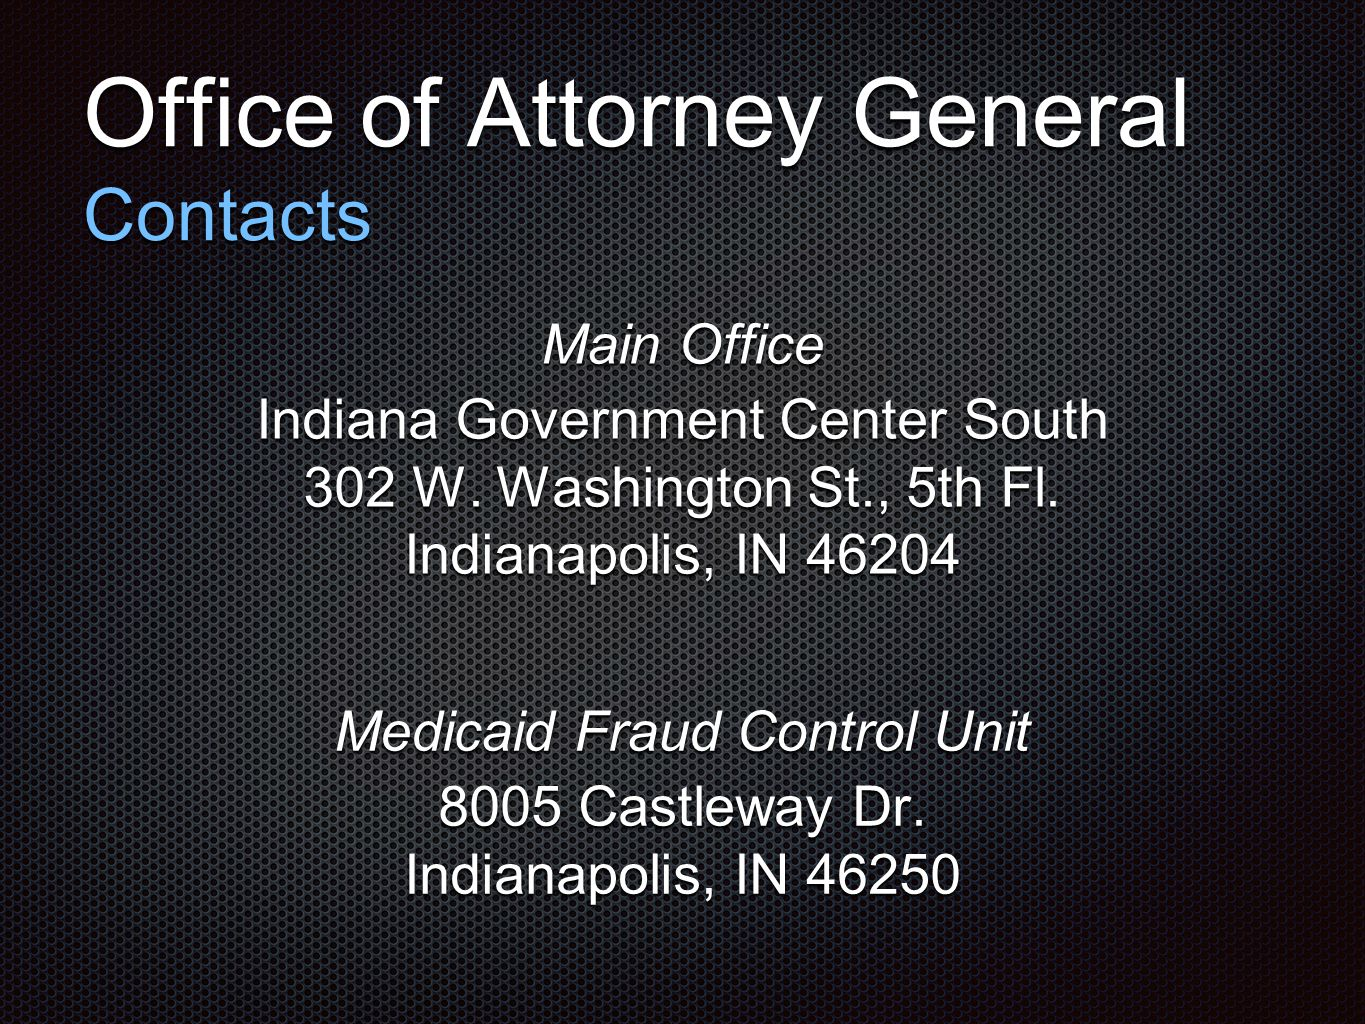 Office of Attorney General Contacts Main Office Indiana Government Center South 302 W. Washington St., 5th Fl. Indianapolis, IN 46204 Medicaid Fraud C